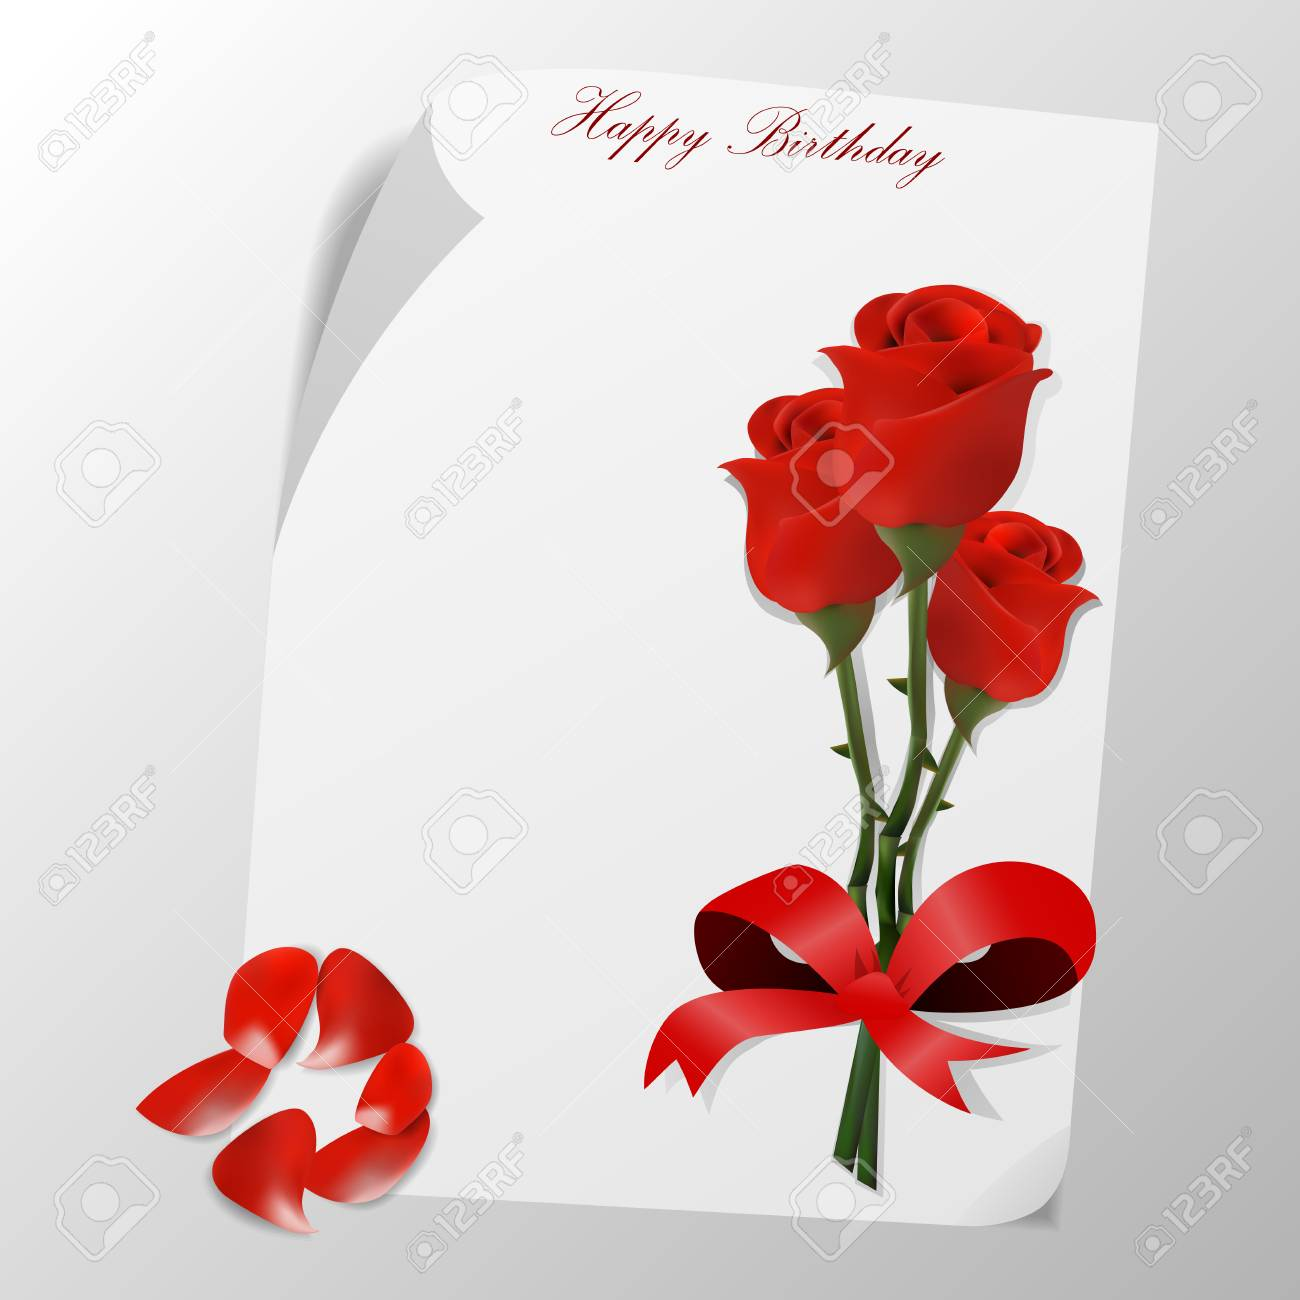 Happy Birthday Card With Roses Flower Stock Photo